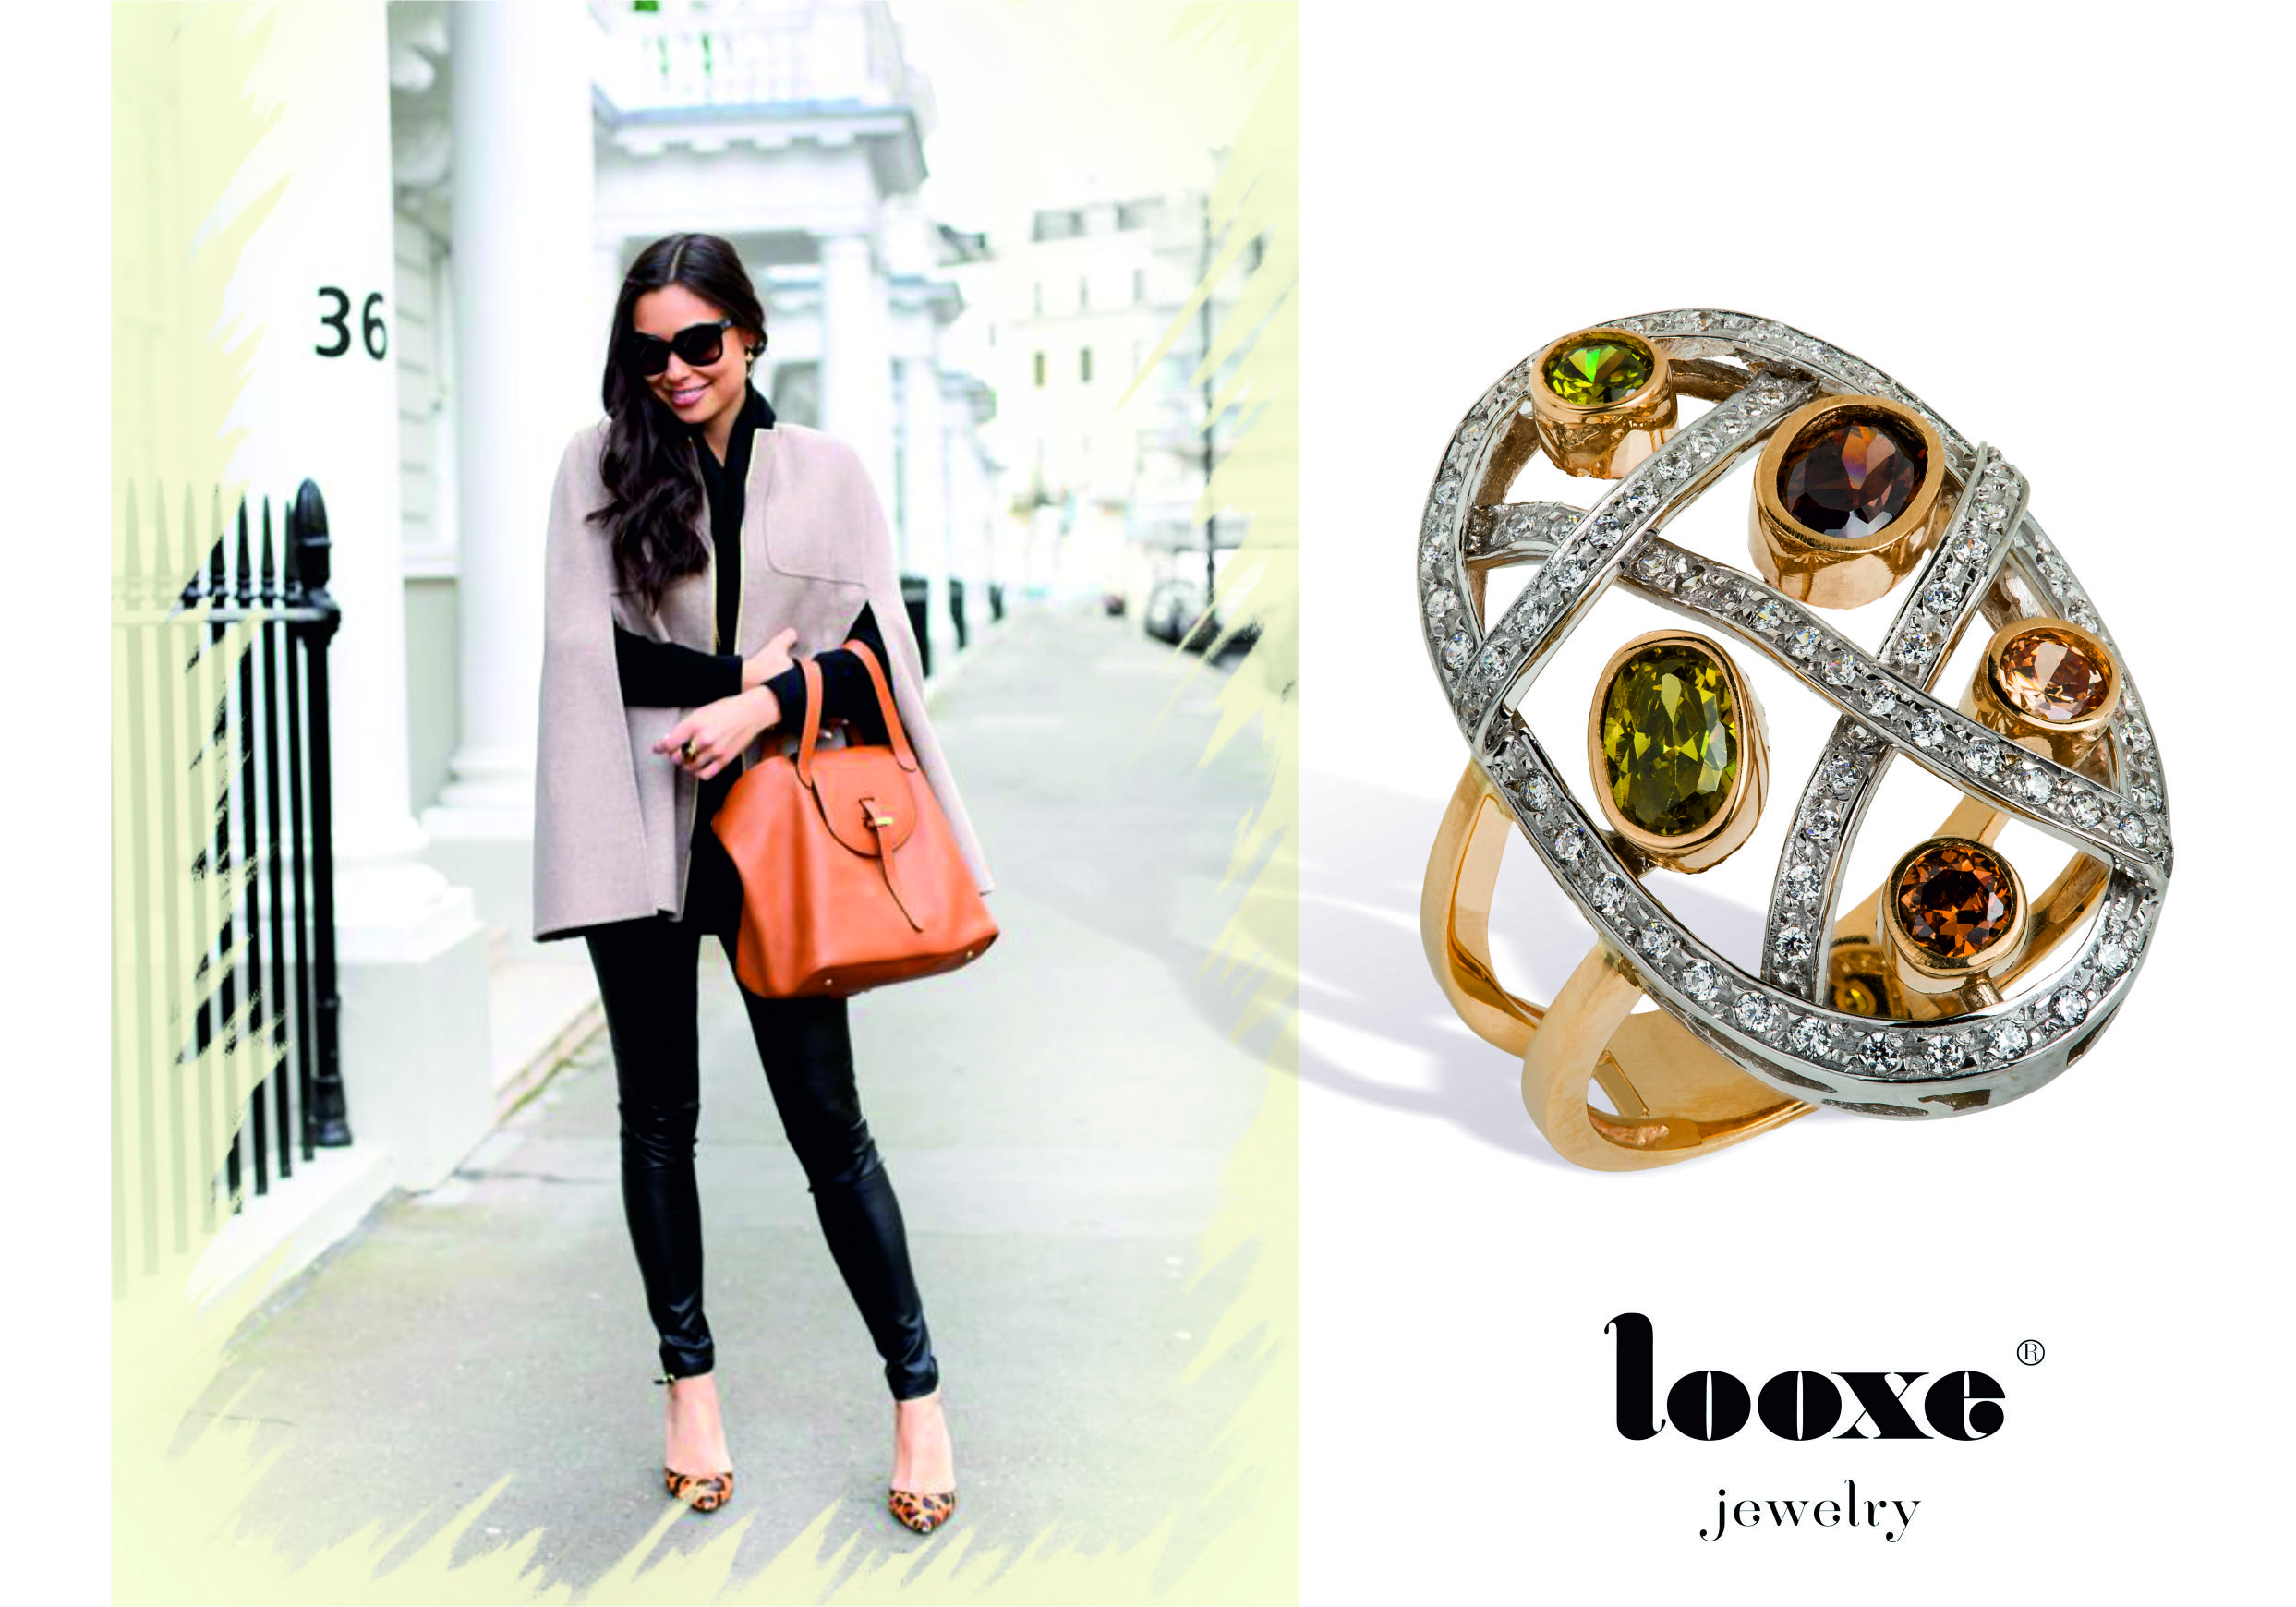 Looxe Lookbook - Shine with this Looxe piece. // Looxe Lookbook - Brilha com esta peça Looxe // Looxe Lookbook – Brilla con esta pieza Looxe ANL4159 #looxe #looxejewelry #jewelry #anellooxe #anel #moda #lookbook #looxe #looxejewelry #jewelry #ringlooxe #ring #fashion #lookbook #looxe #looxejewelry #jewelry #anillolooxe #anillo #moda #lookbook Foto by: withlovefromkat.com